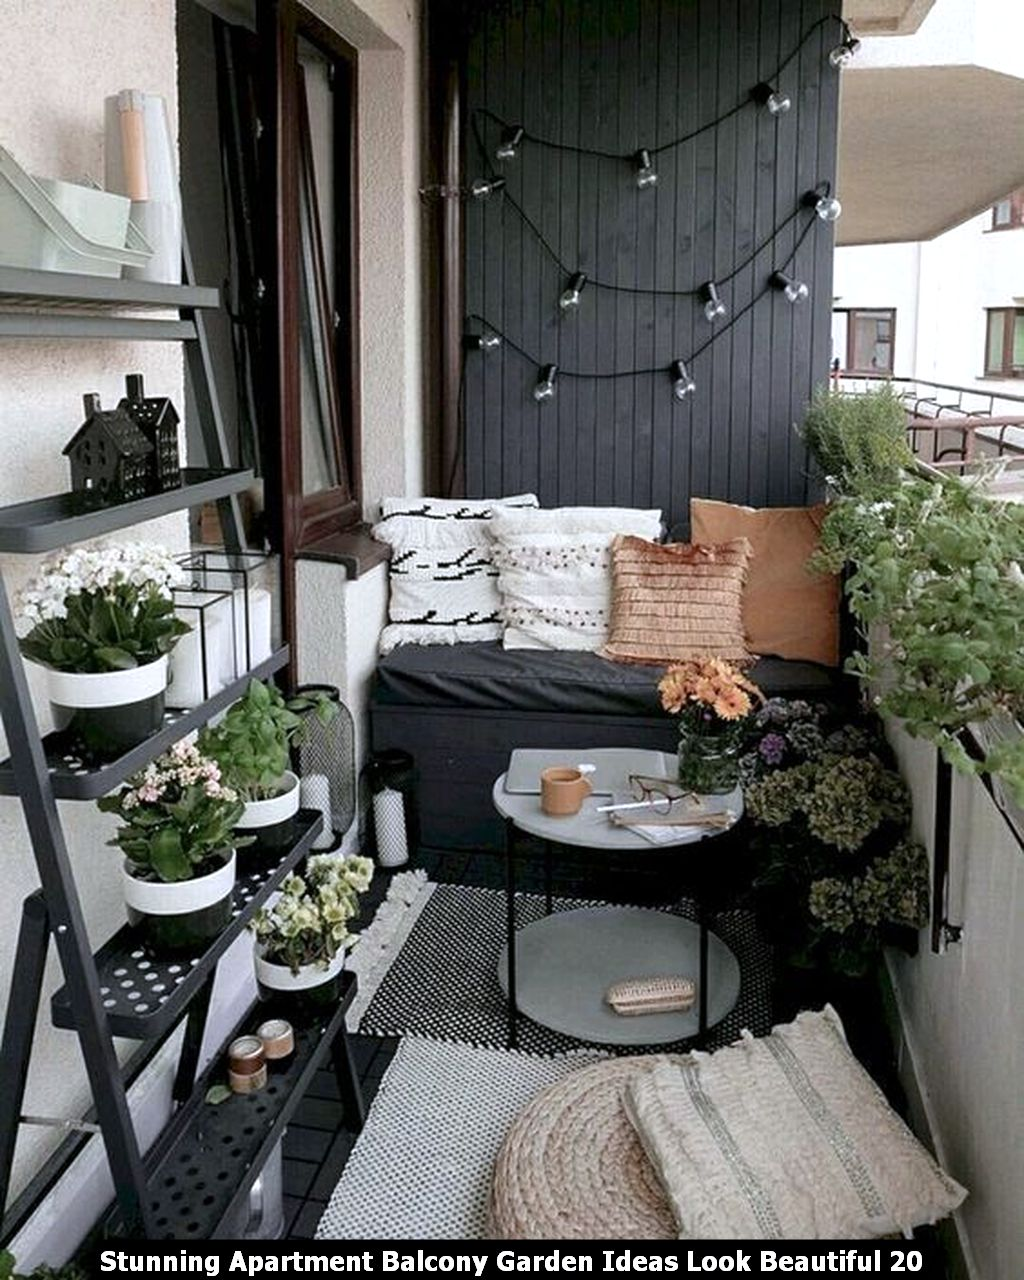 Stunning Apartment Balcony Garden Ideas Look Beautiful 20